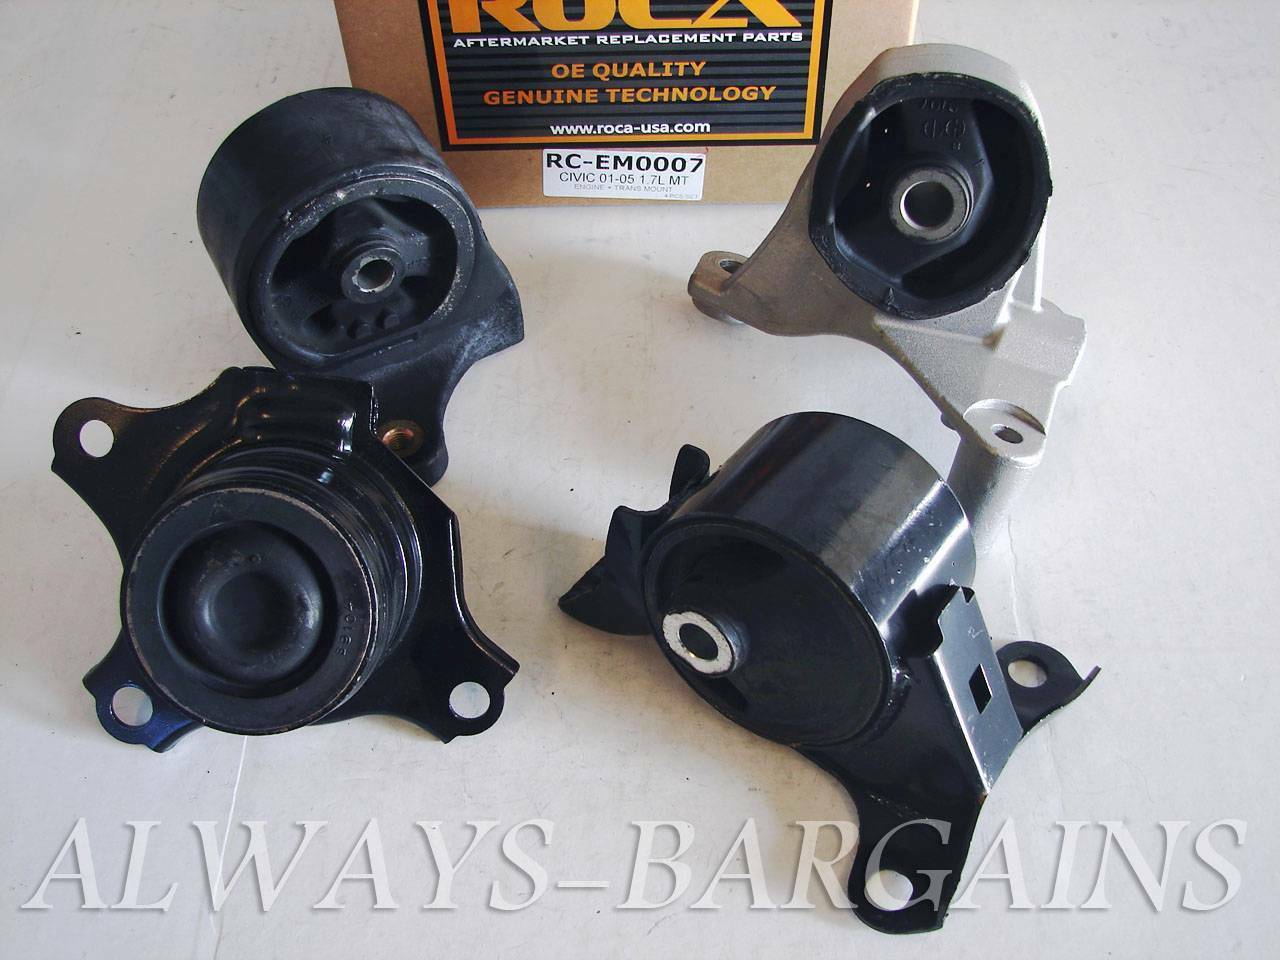 ROCAR Engine Mount Motor Transmission Mount Bushing Civic 01-05 1.7L MT  4pcs 1 of 1Only 2 available See More